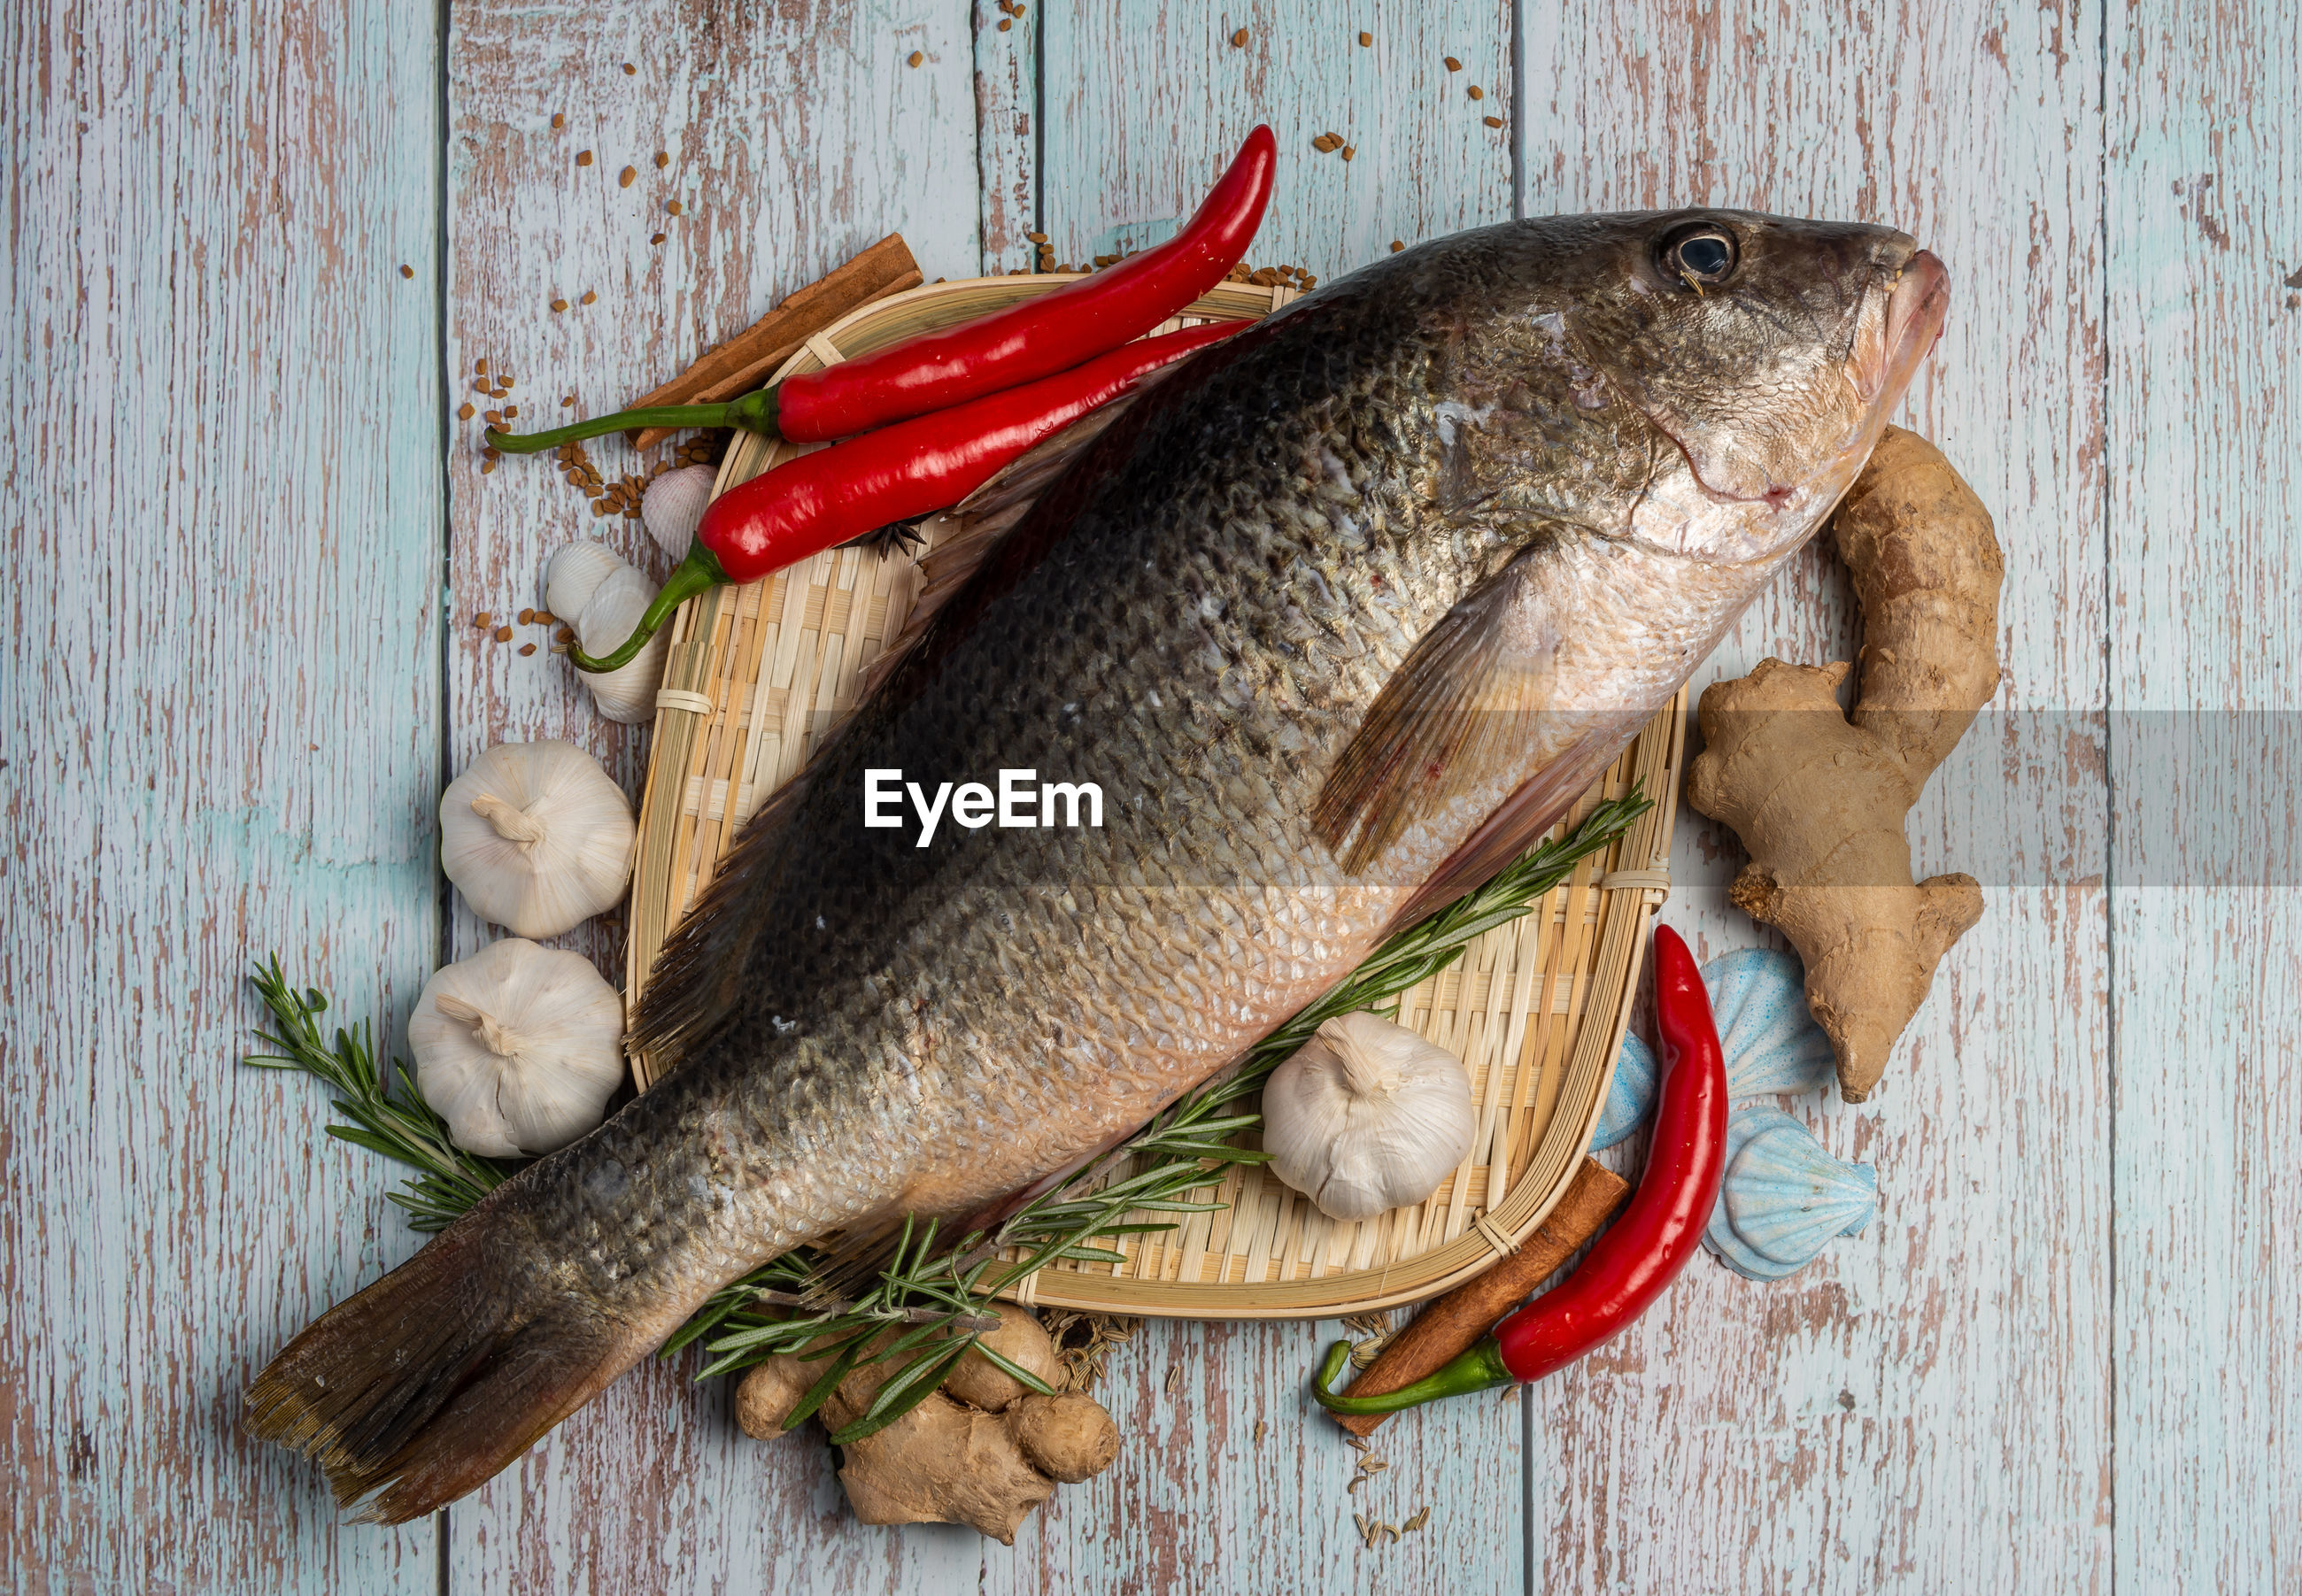 HIGH ANGLE VIEW OF DEAD FISH ON TABLE AGAINST WALL